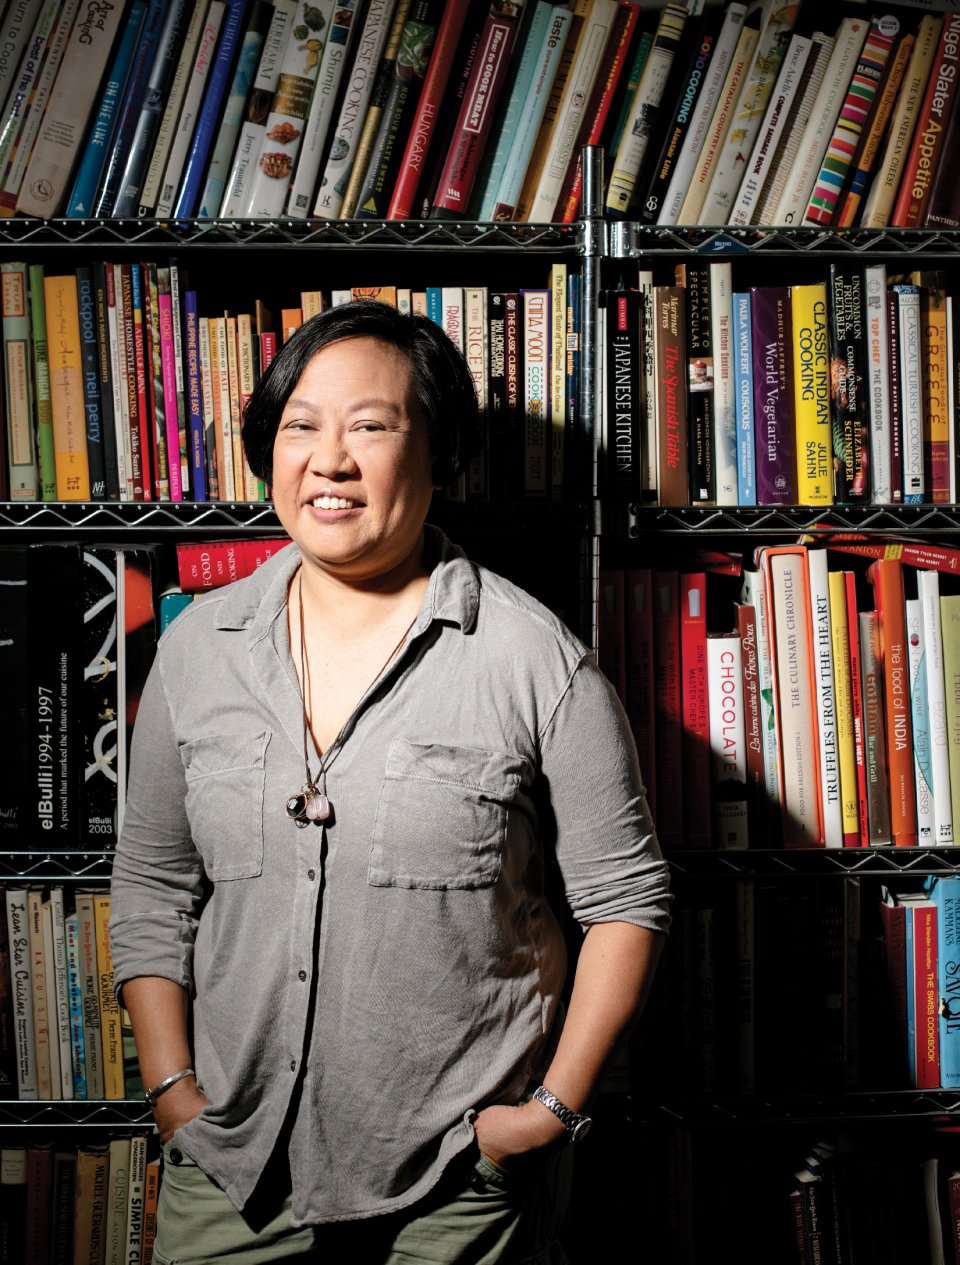 Anita Lo '88 stands in front of a bookshelf.